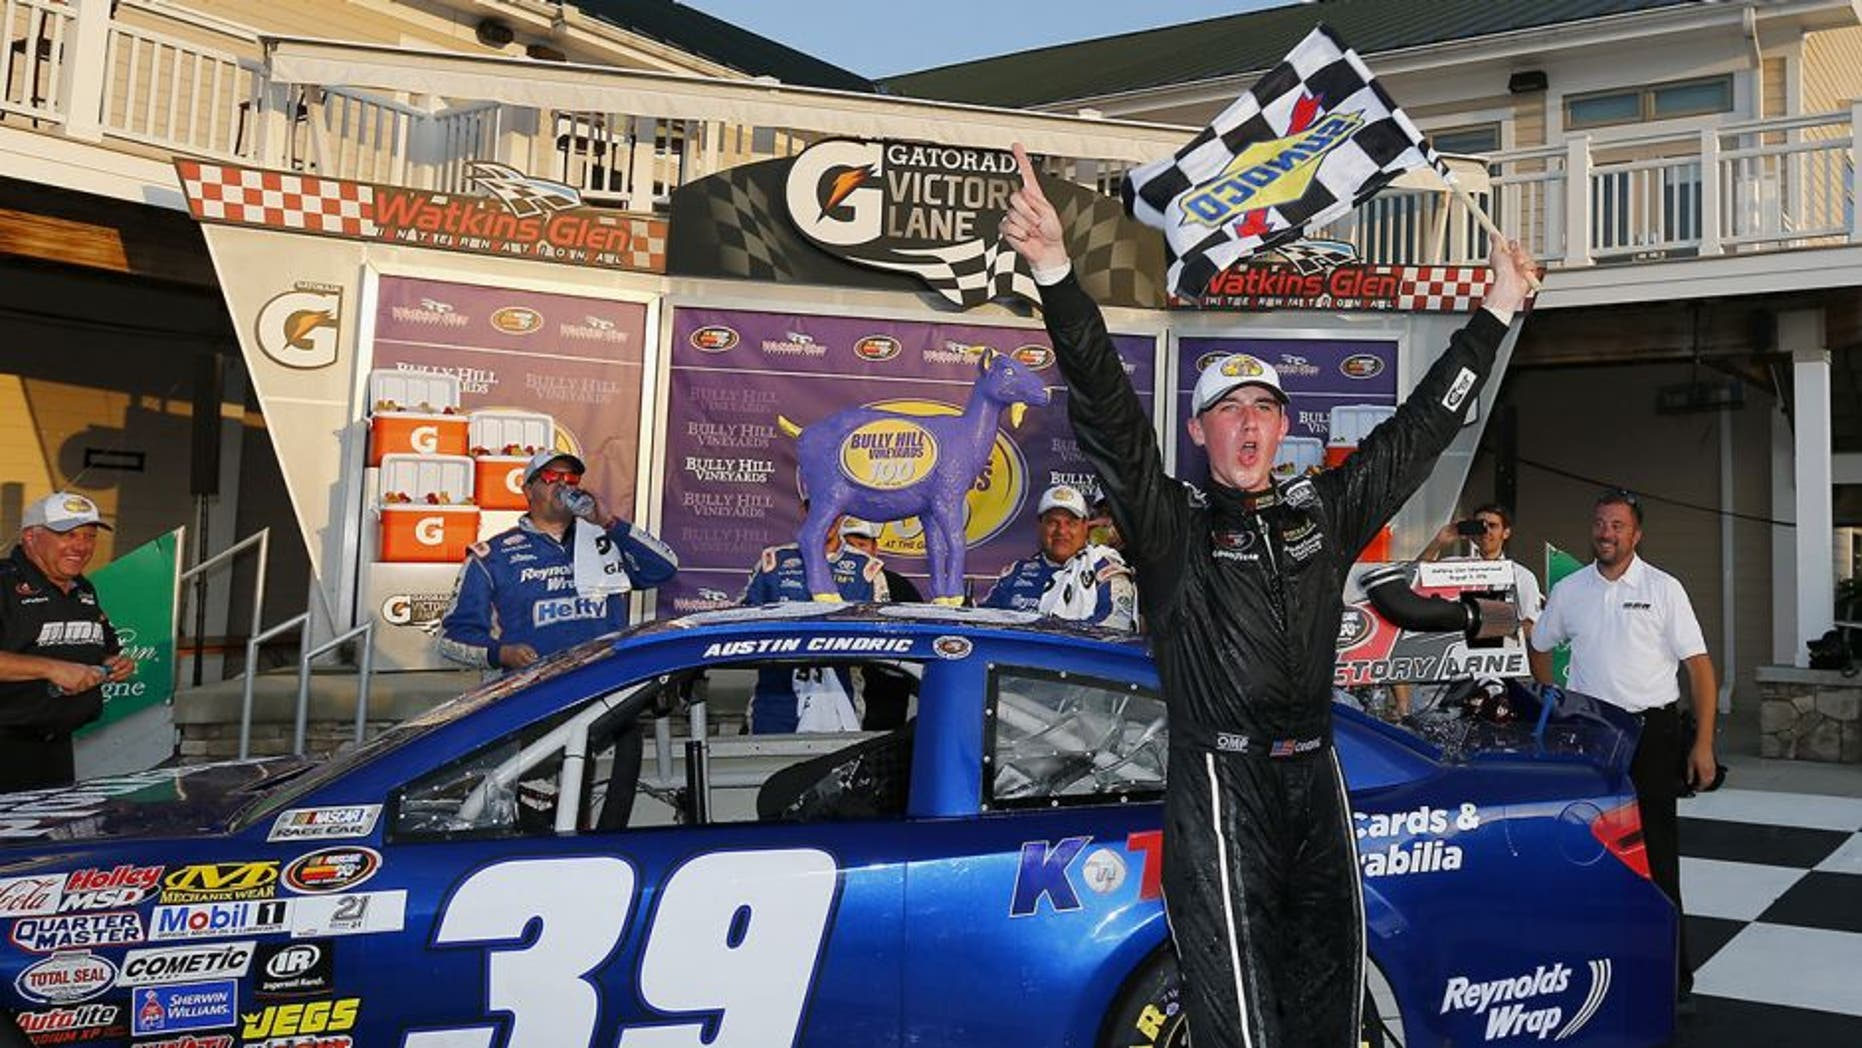 WATKINS GLEN, NY - AUGUST 05: Austin Cindric, driver of the #39 Reynolds Wrap Toyota, celebrates in victory lane after winning the NASCAR K&N Pro East Series Bully Hill Vineyards 100 at Watkins Glen International on August 5, 2016 in Watkins Glen, New York. (Photo by Jonathan Ferrey/NASCAR via Getty Images)